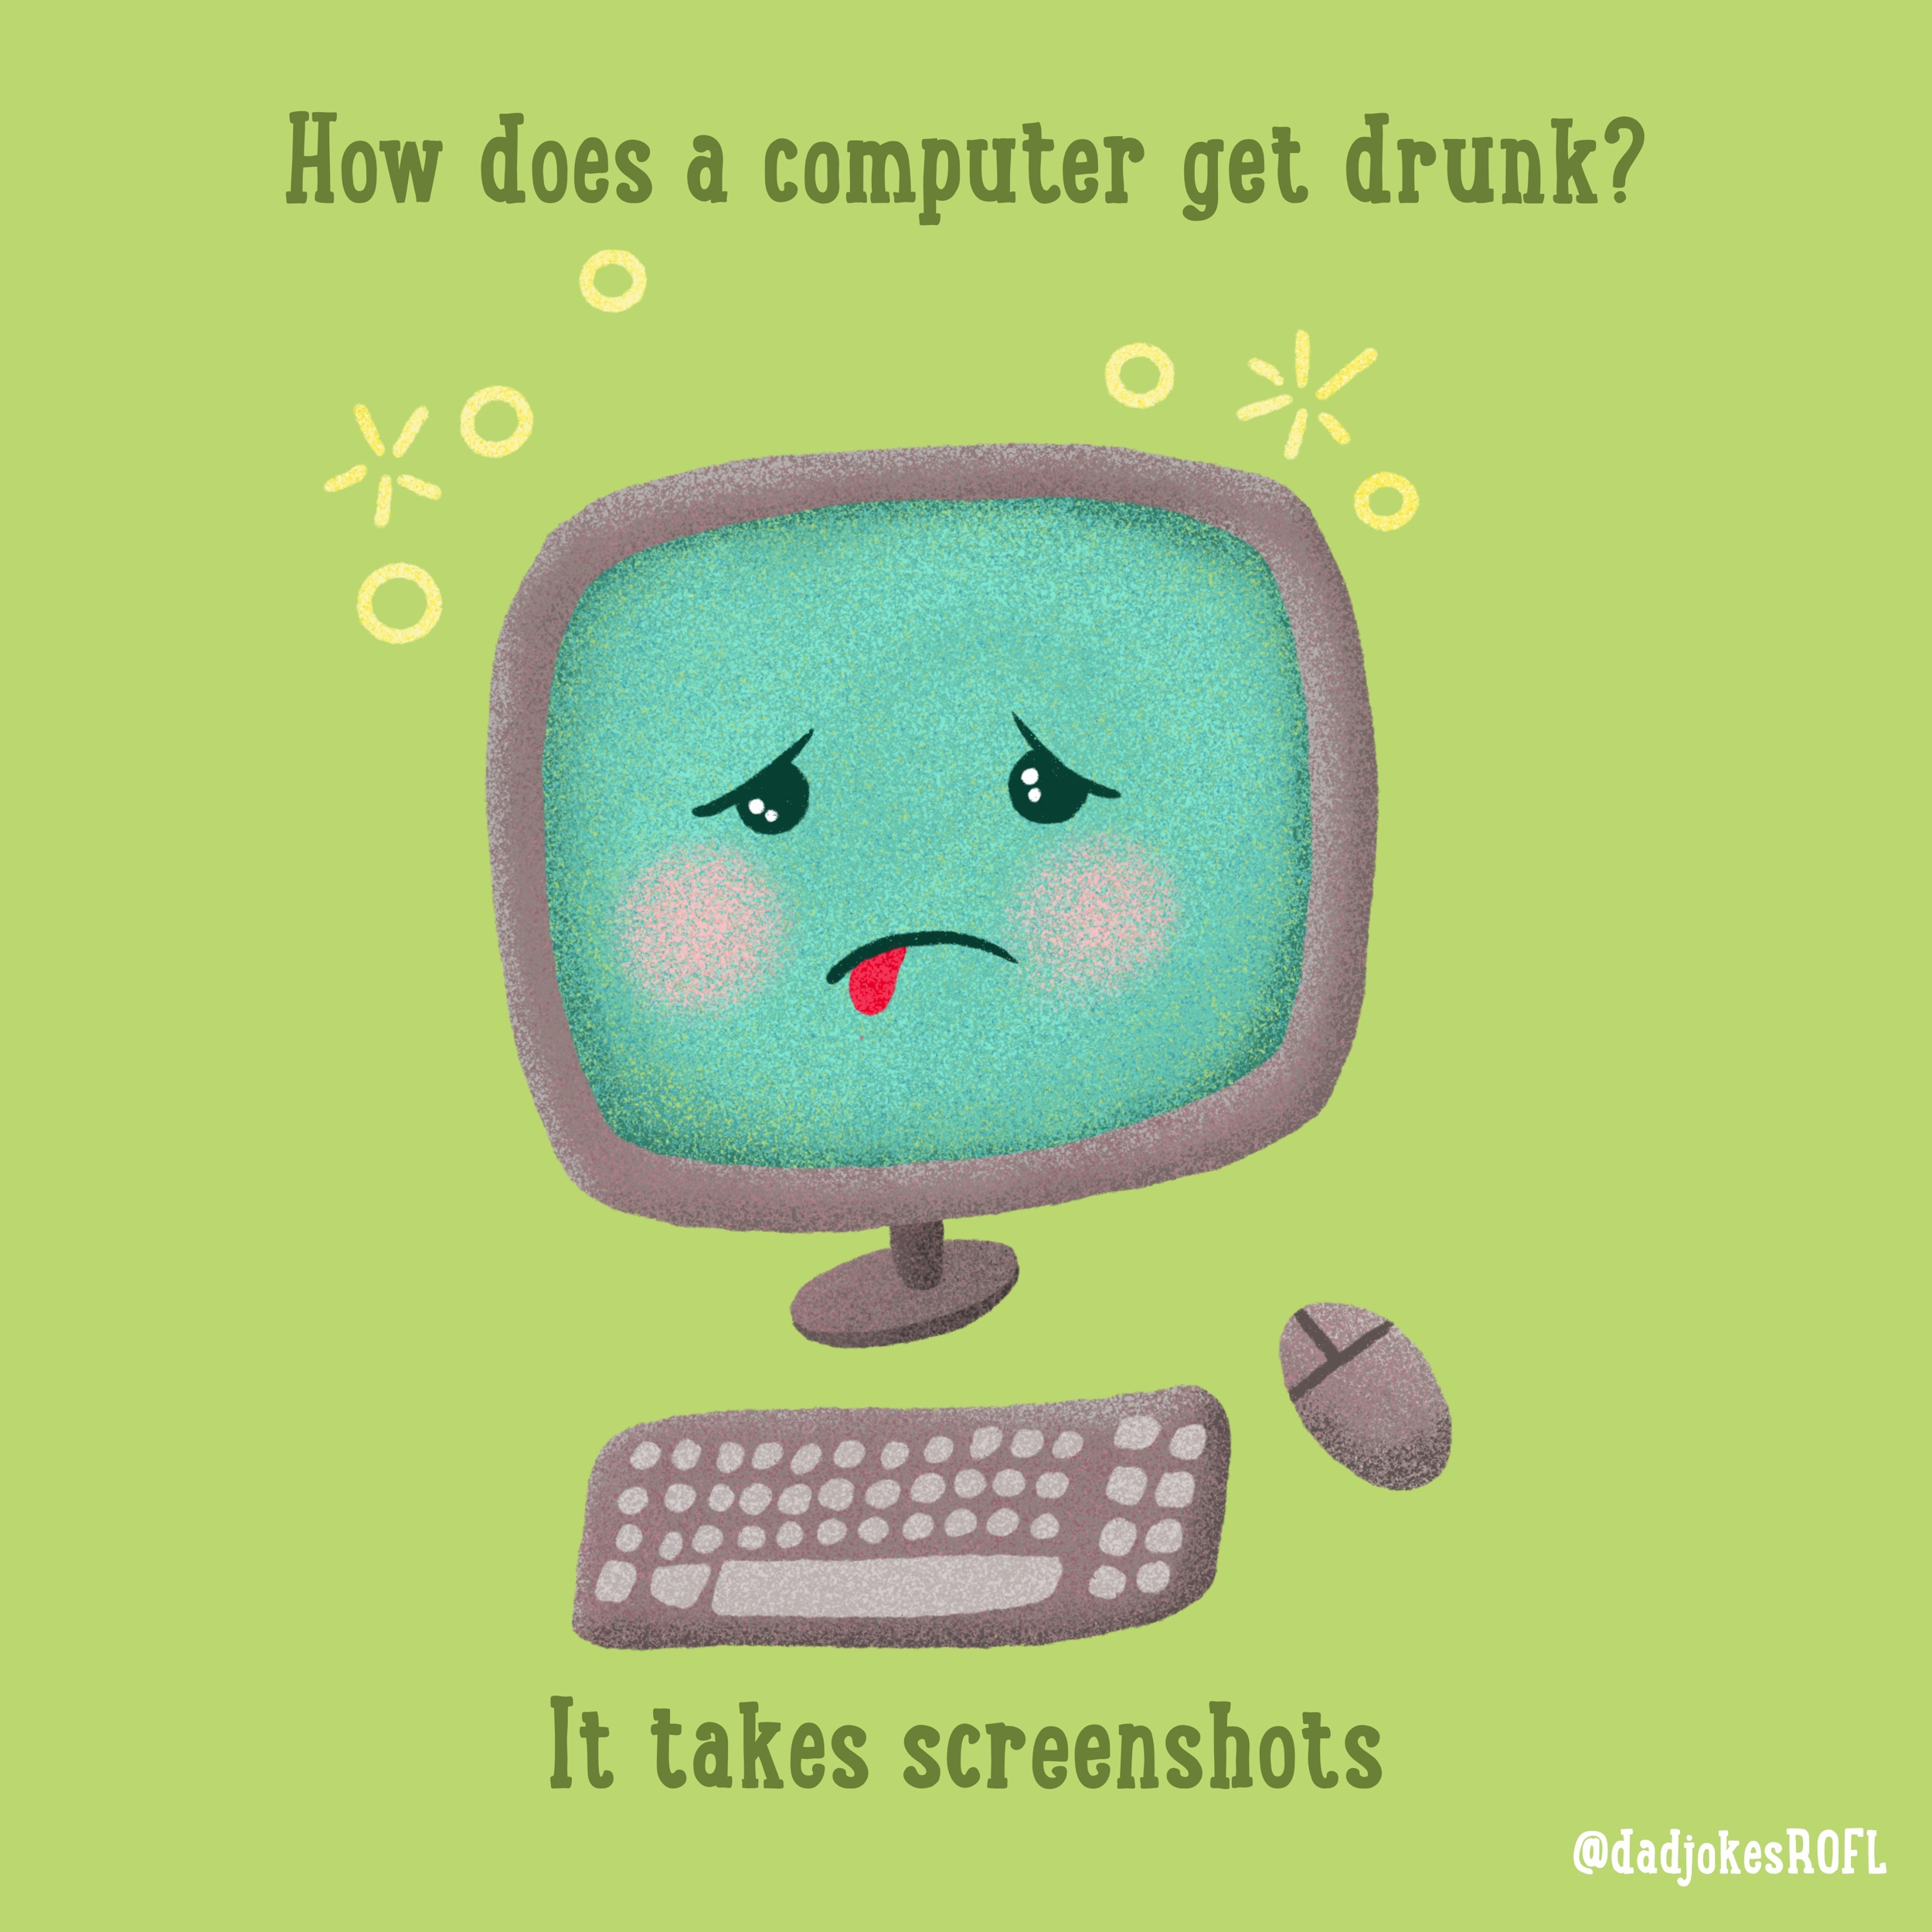 How does a computer get drunk? It takes screenshots